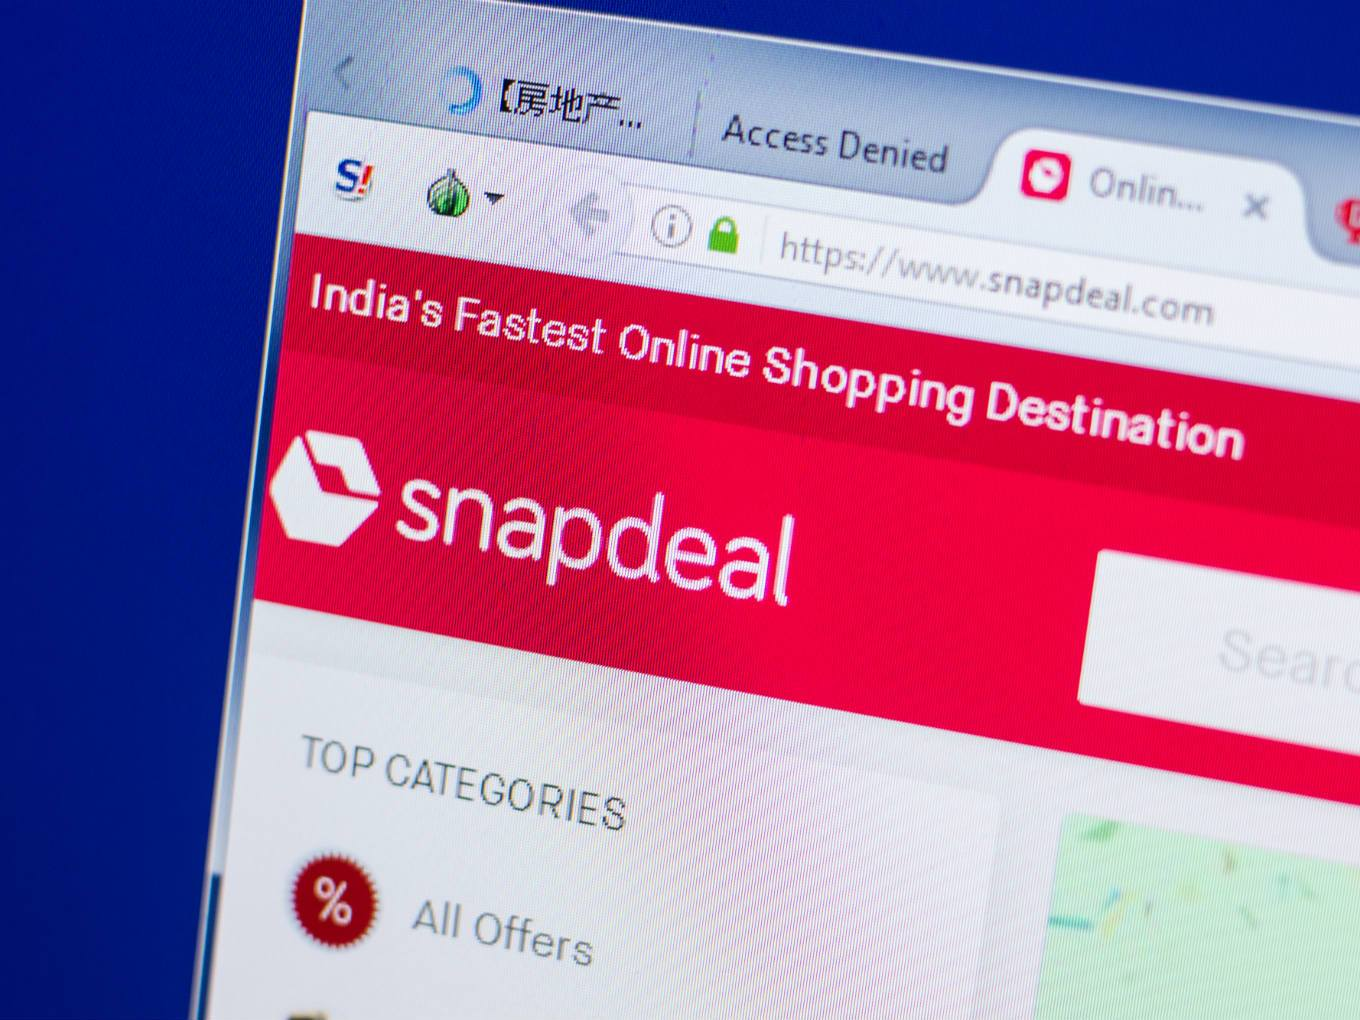 Snapdeal, Casio Caught In Legal Battle Over Alleged Counterfeit Products